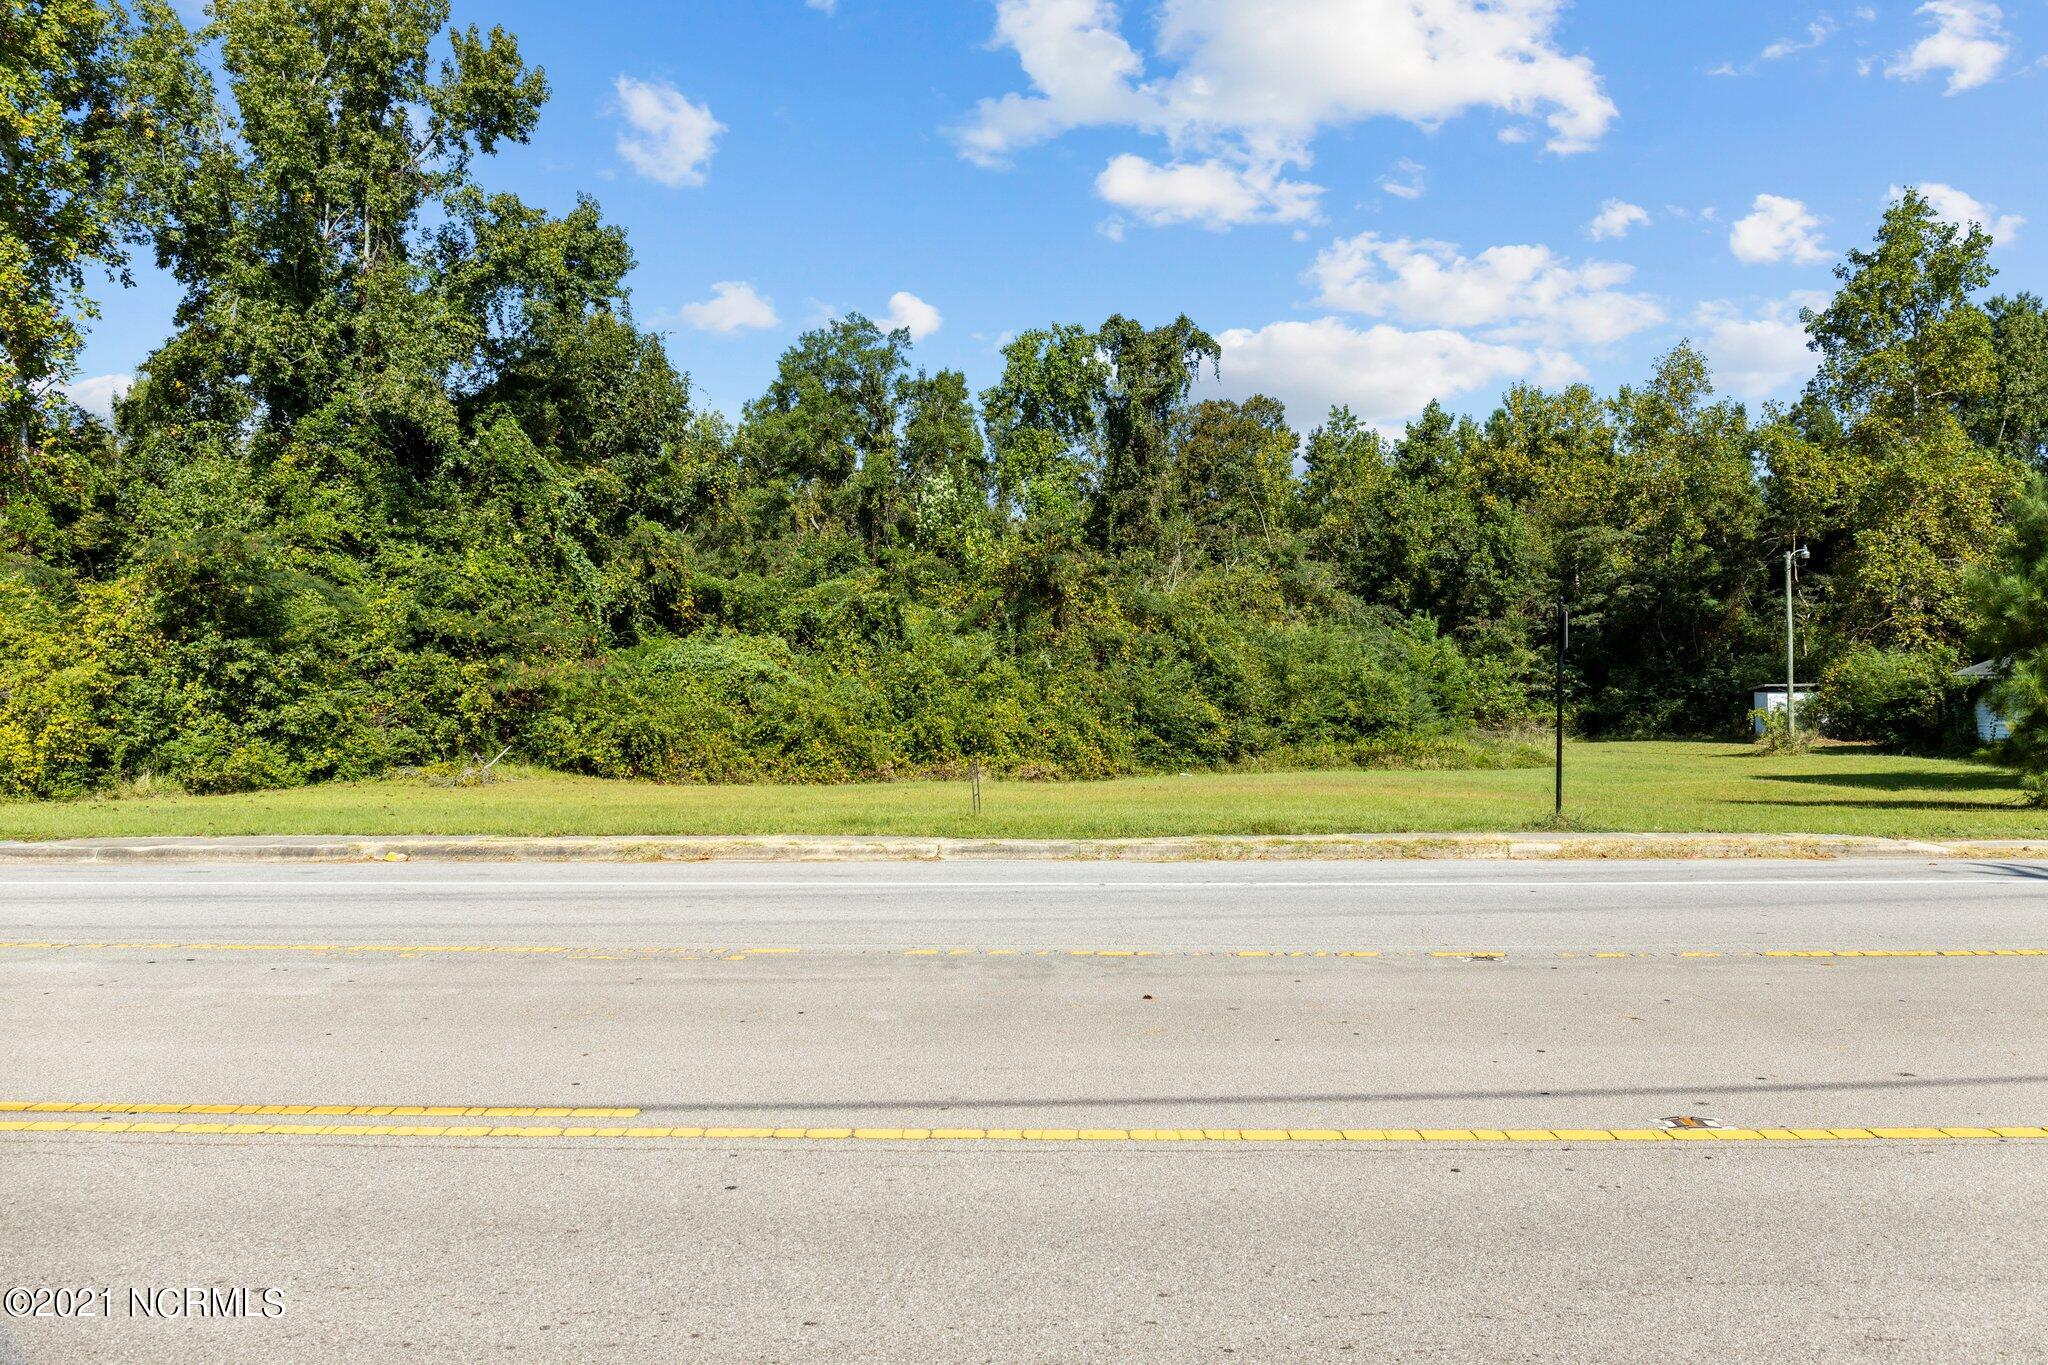 Where are my Visionaries!? This parcel of land is partially cleared and ready for your home-based business. With 170 feet of commercial road frontage & being located in the heart of Jacksonville, this land has many possibilities. Did I mention this property is NOT located in a flood zone? Schedule your showing today!